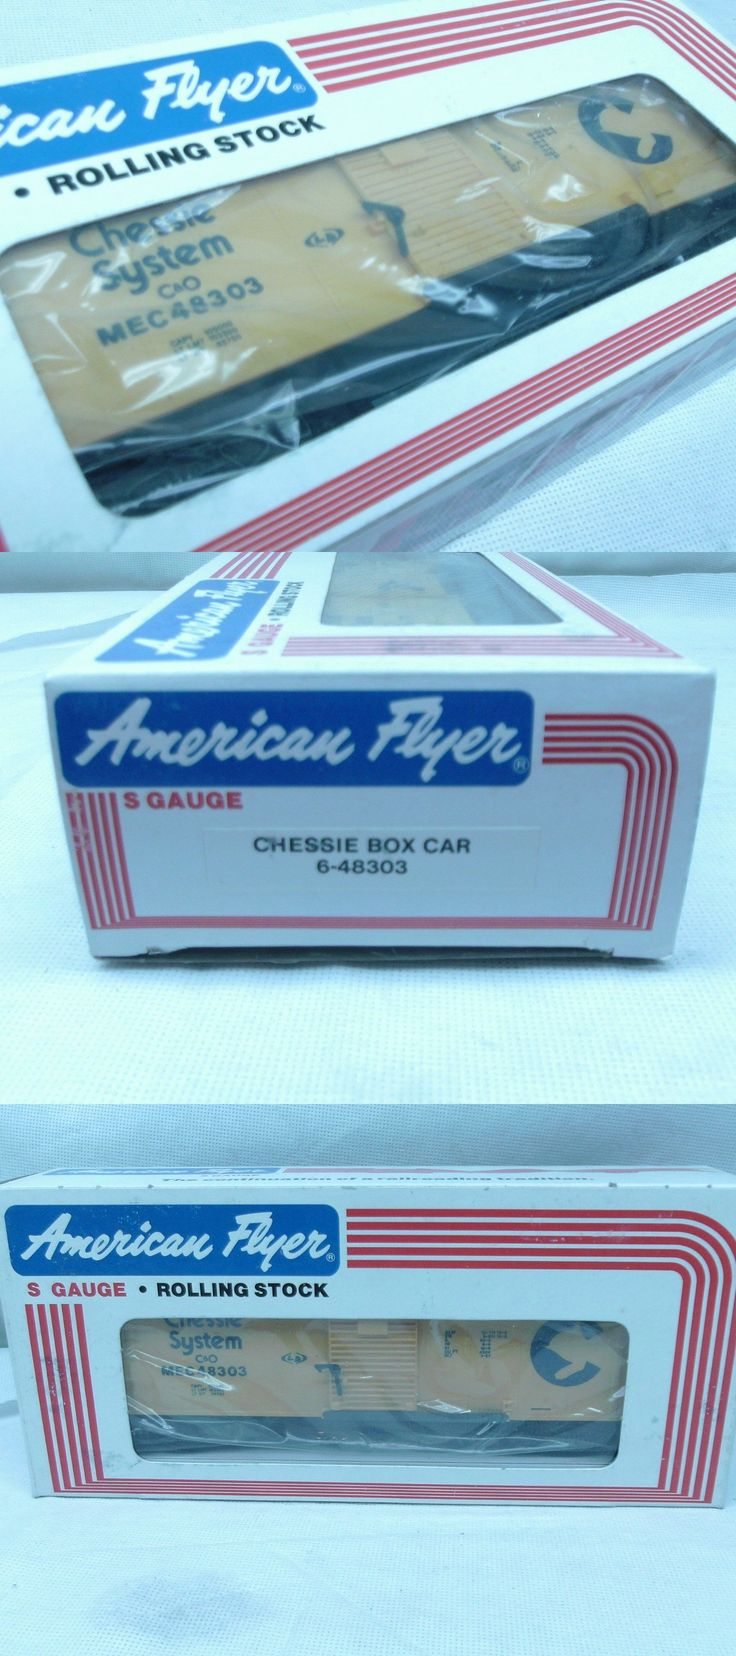 Freight Cars 180286: American Flyer 48303 Chessie Boxcar Mib Still In Box -> BUY IT NOW ONLY: $34.95 on eBay!